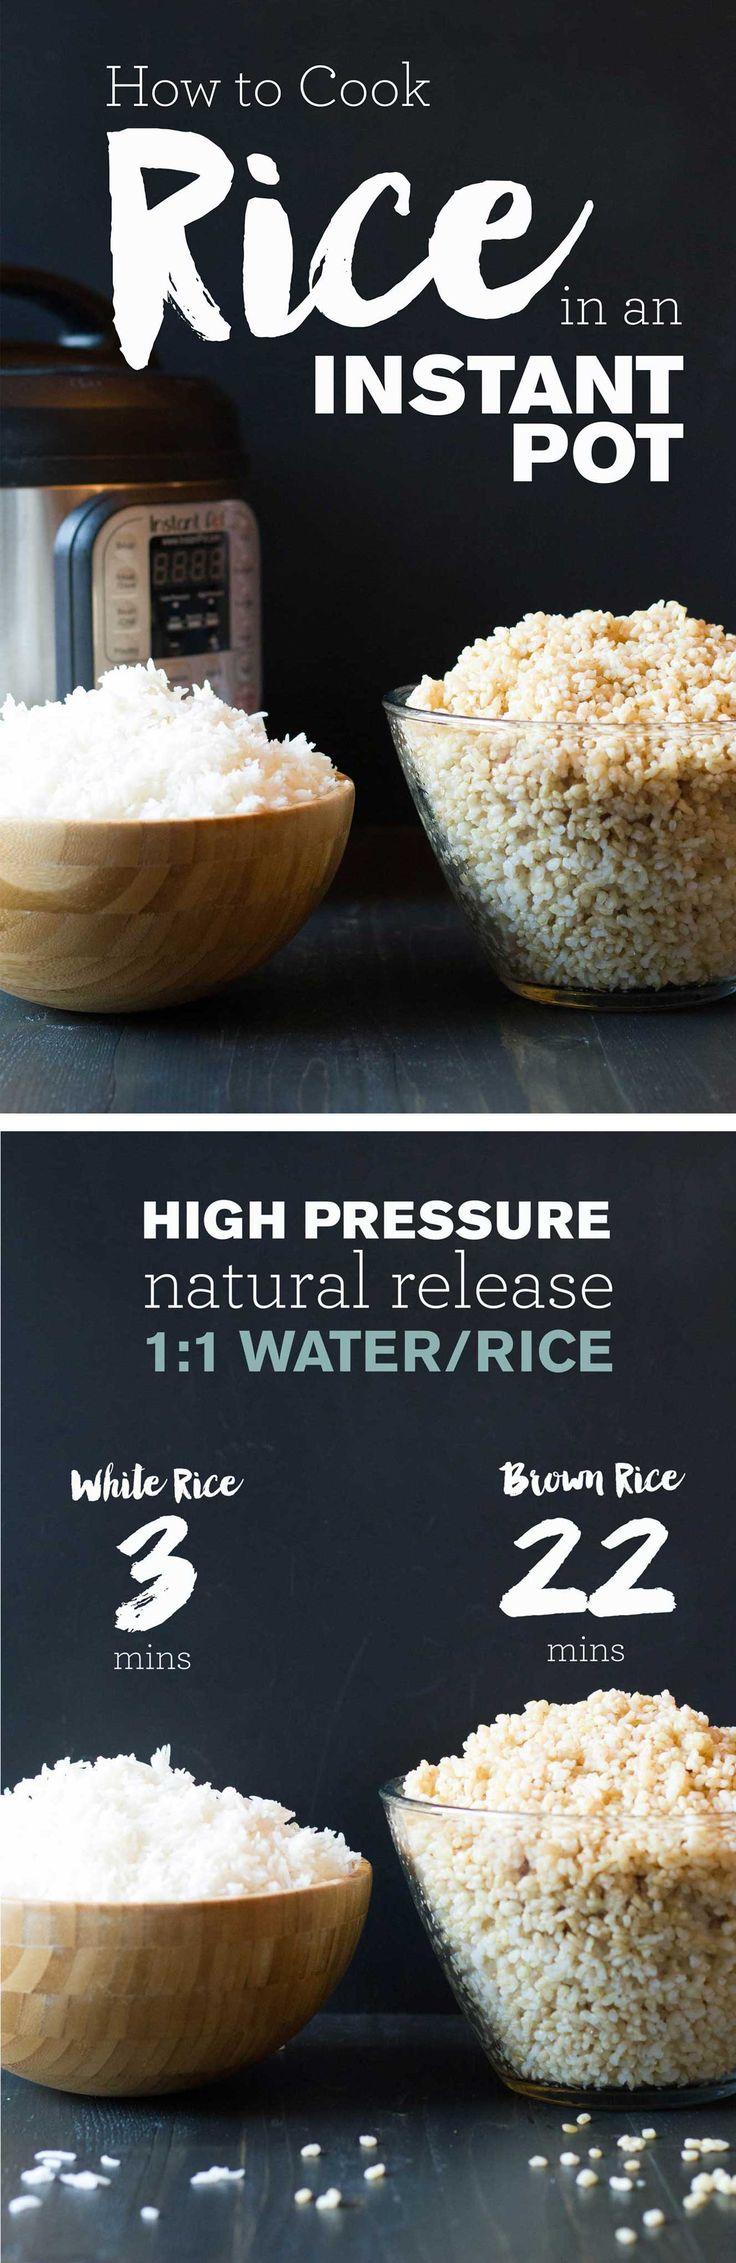 How to Cook Rice in an Instant Pot |1:1 rice:water | White Rice 3 min + natural release | Brown Rice 22 min + natural release